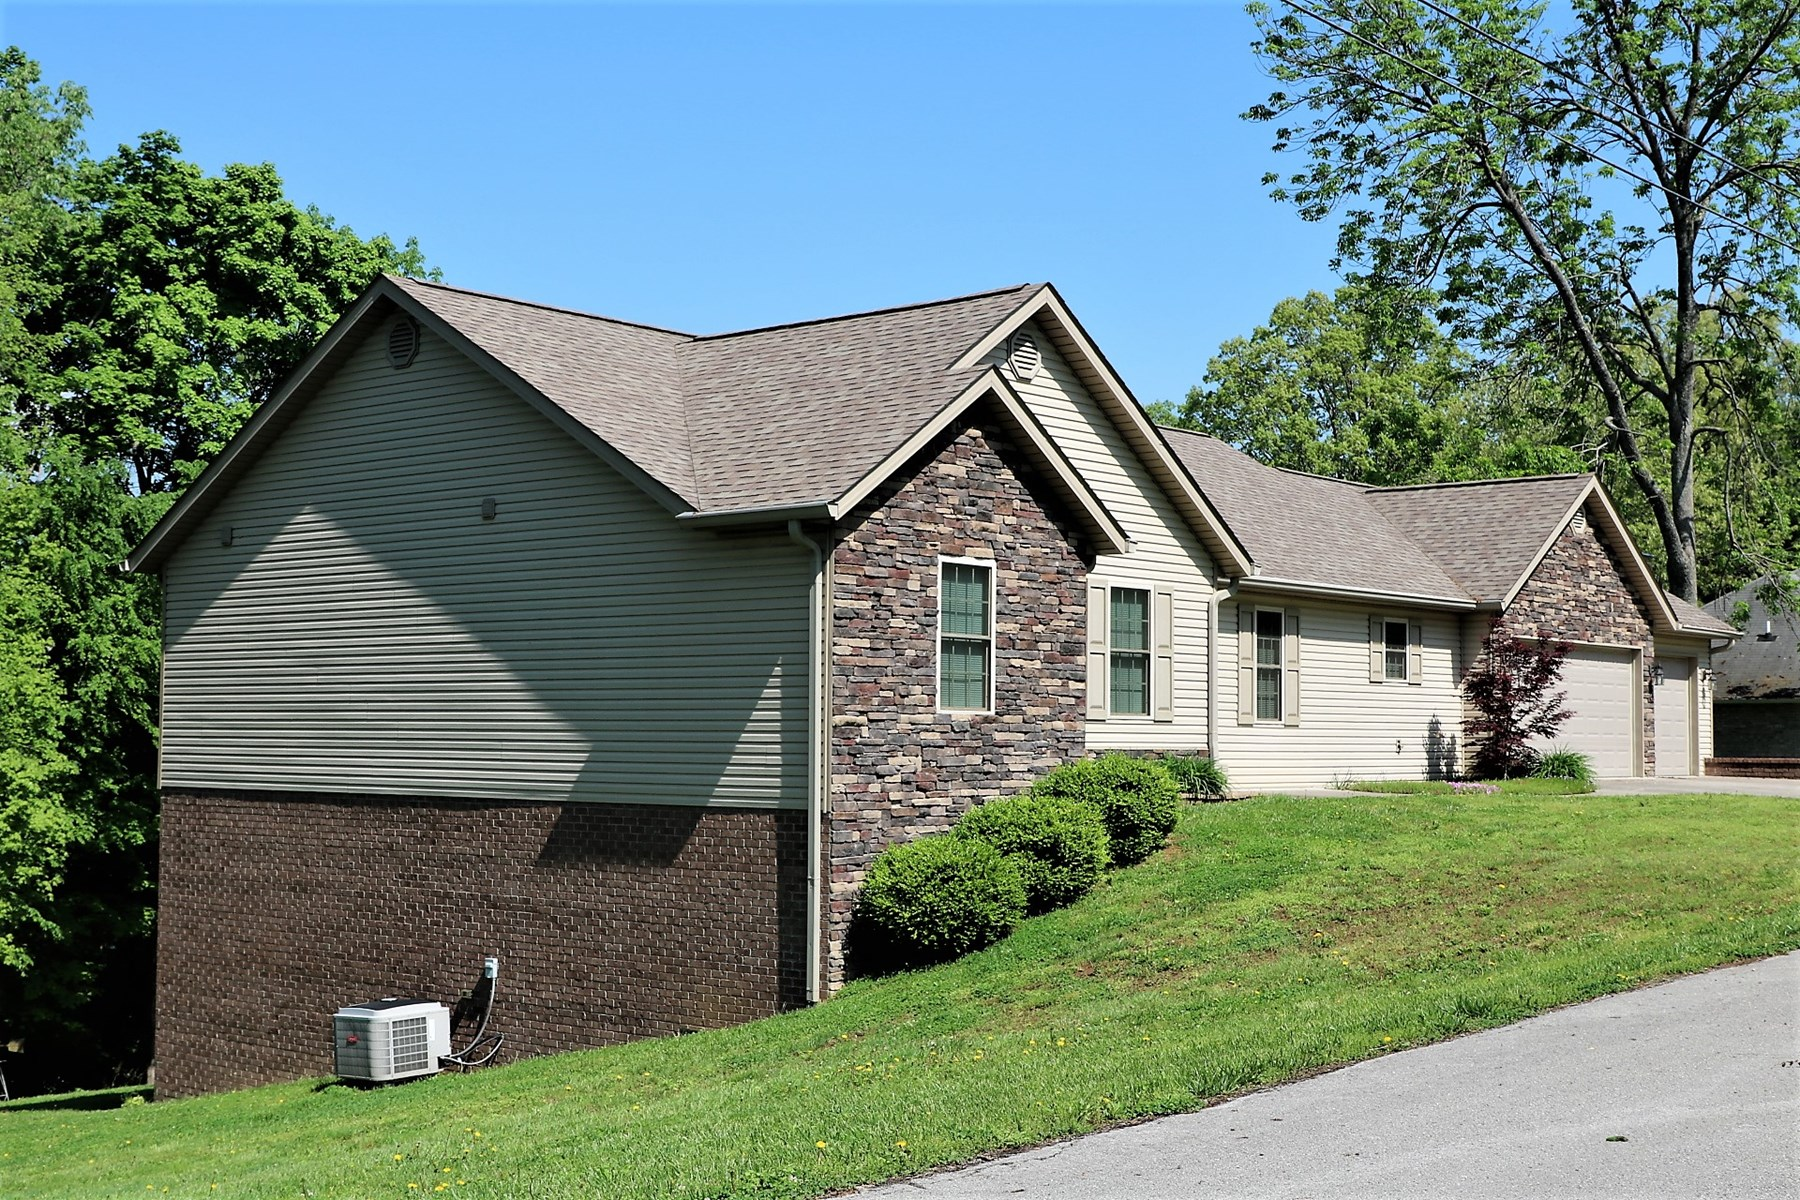 Lake Front Home for sale on Lake Cumberland in Bronston KY.